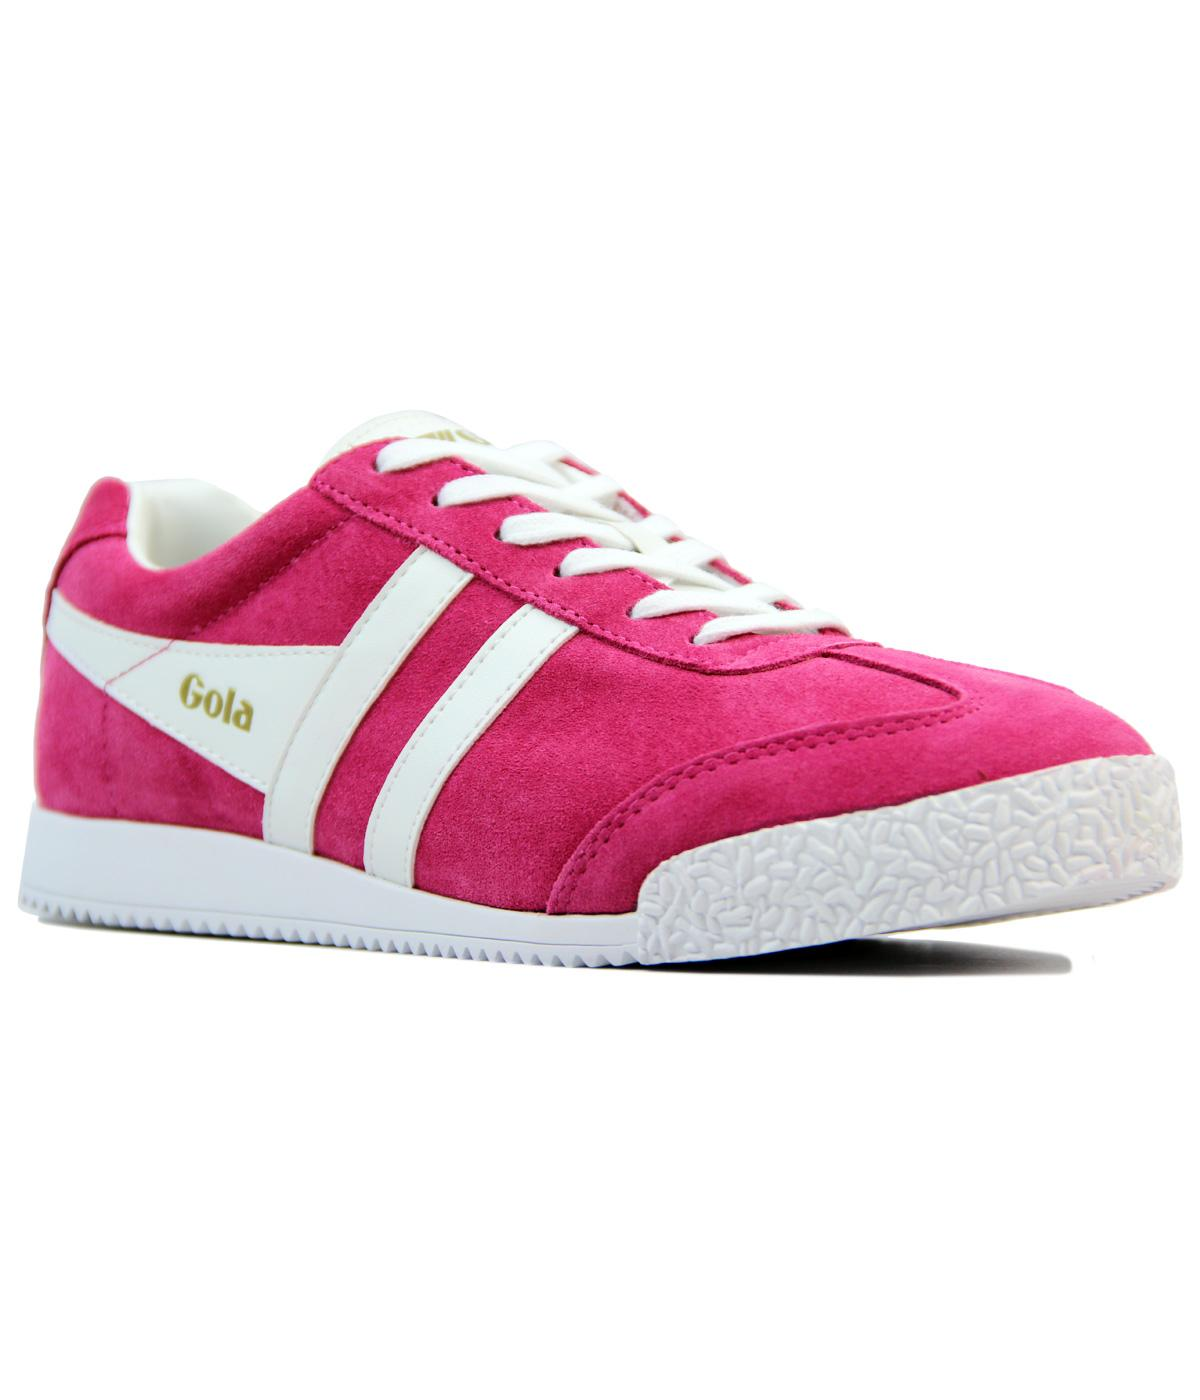 GOLA Harrier Womens Retro Suede Trainers FUCHSIA